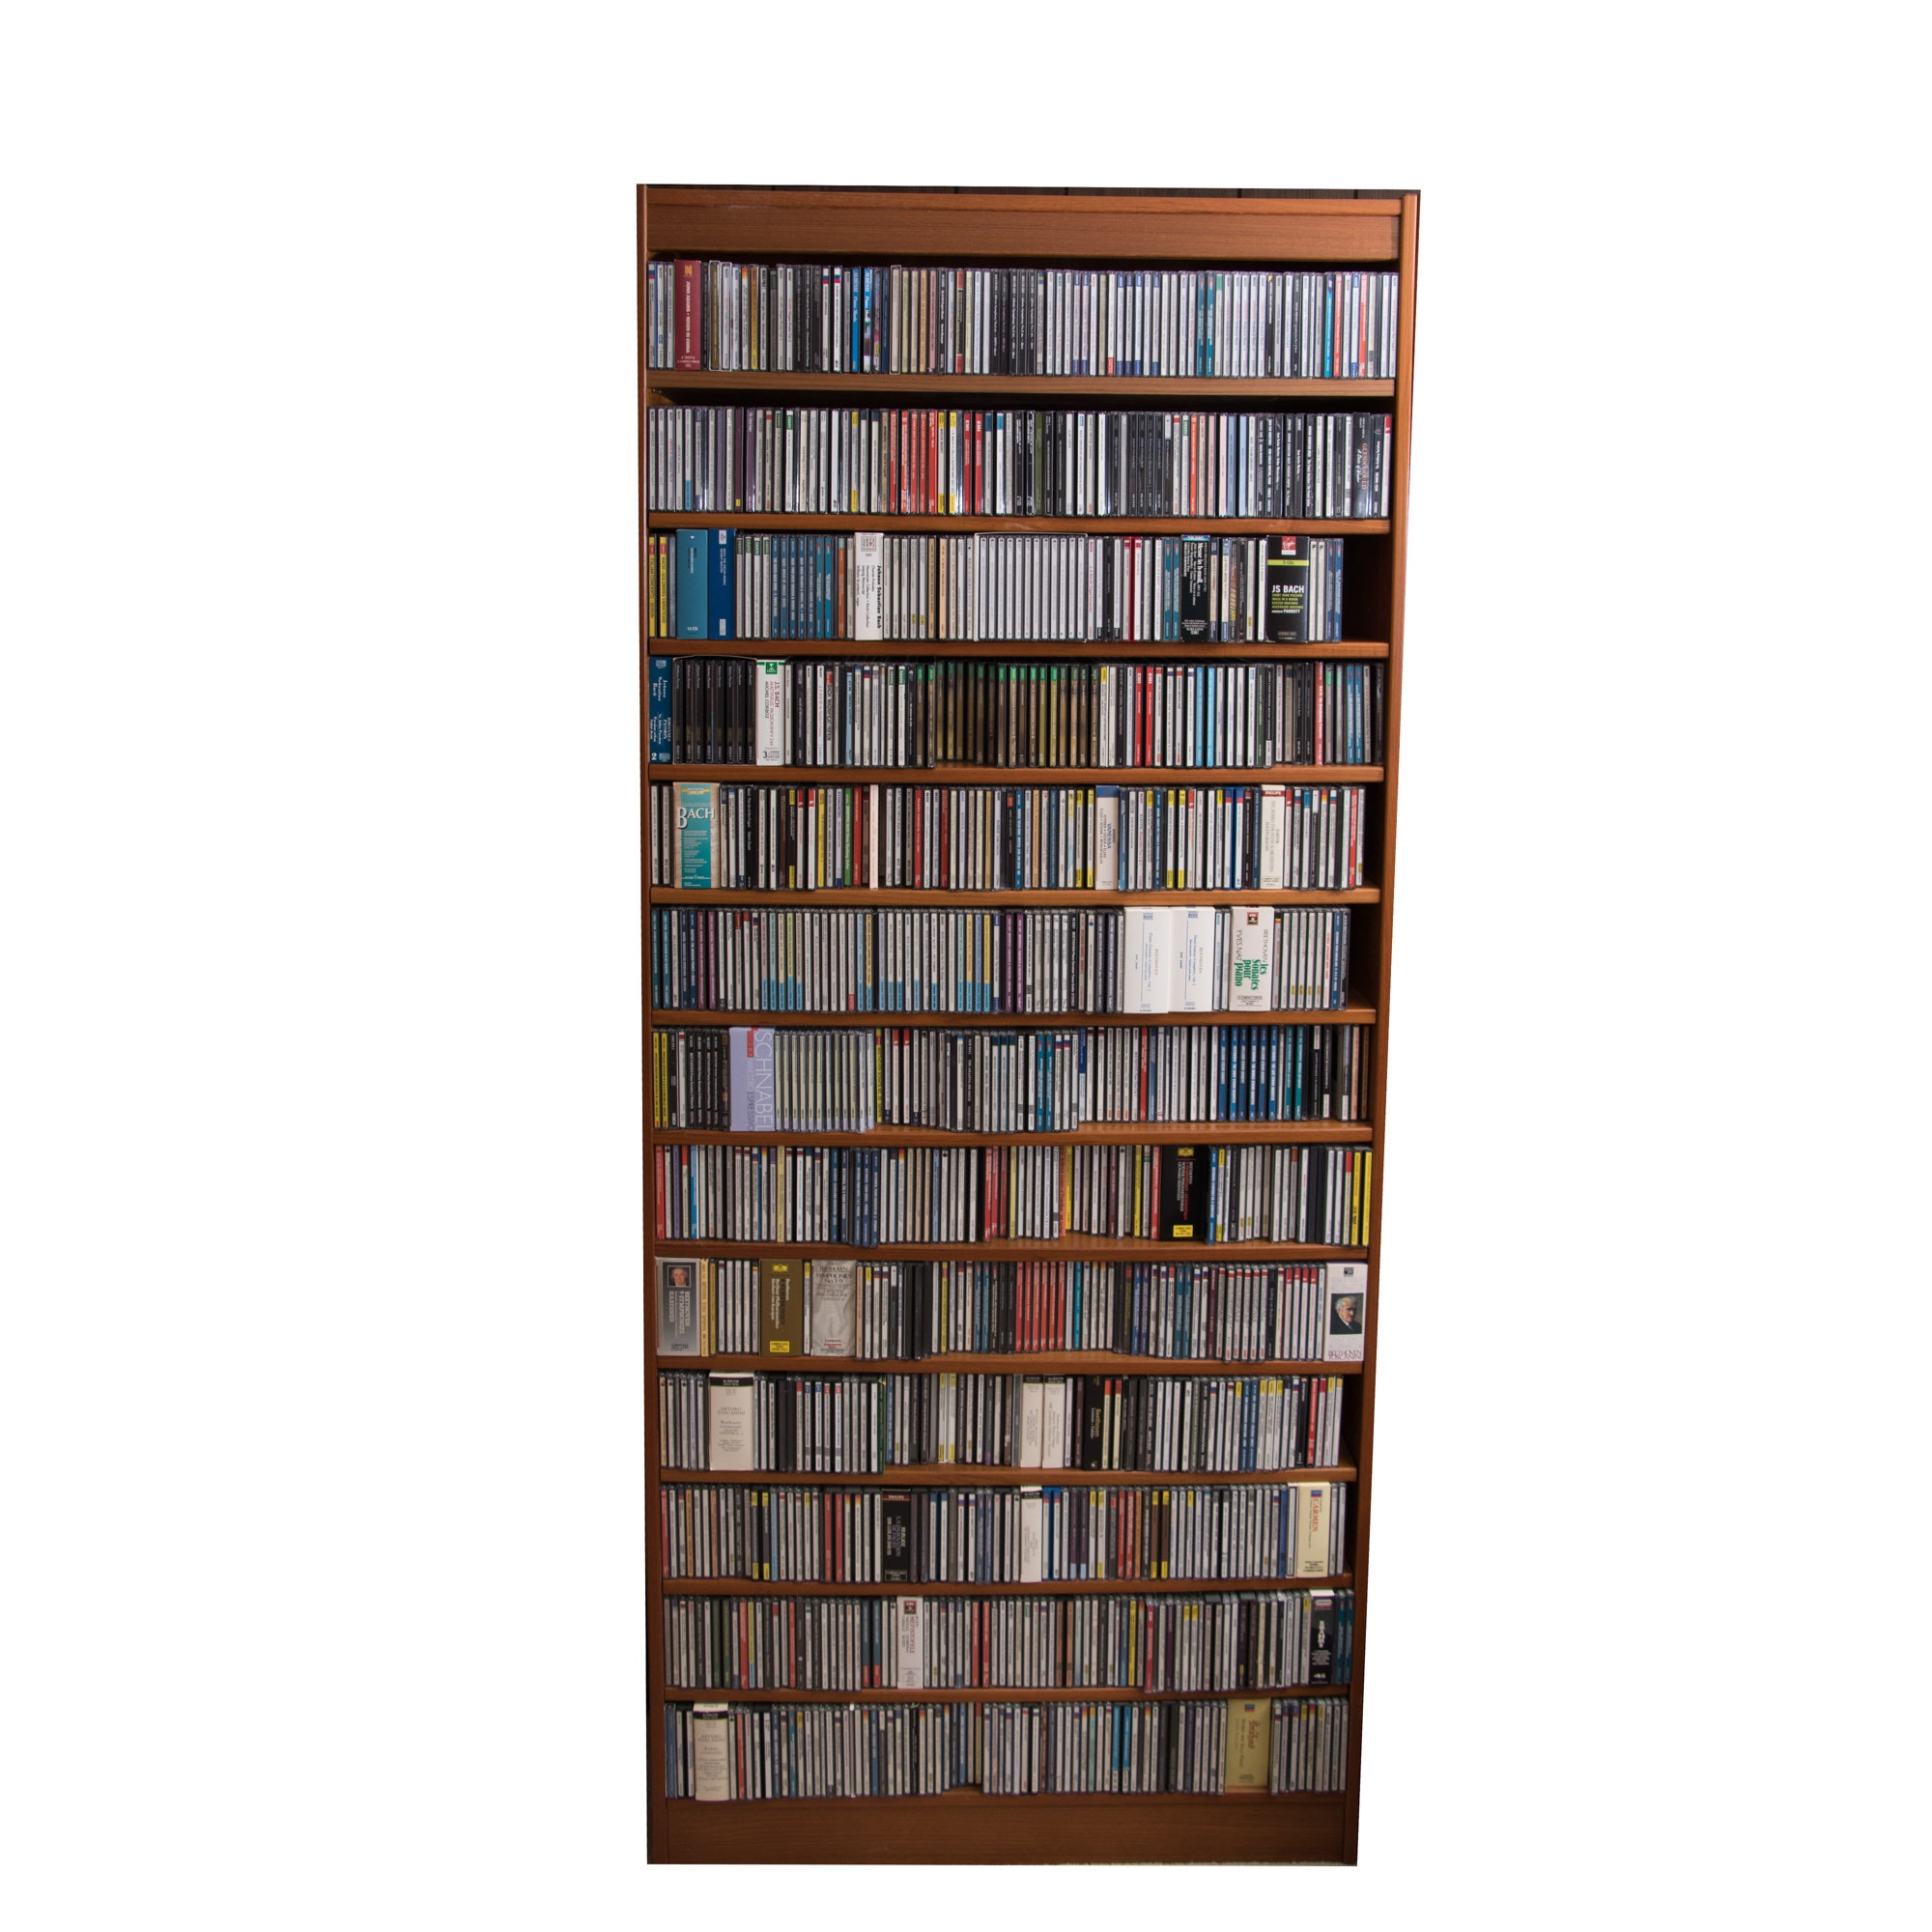 Large Collection of Classical and Orchestral CDs